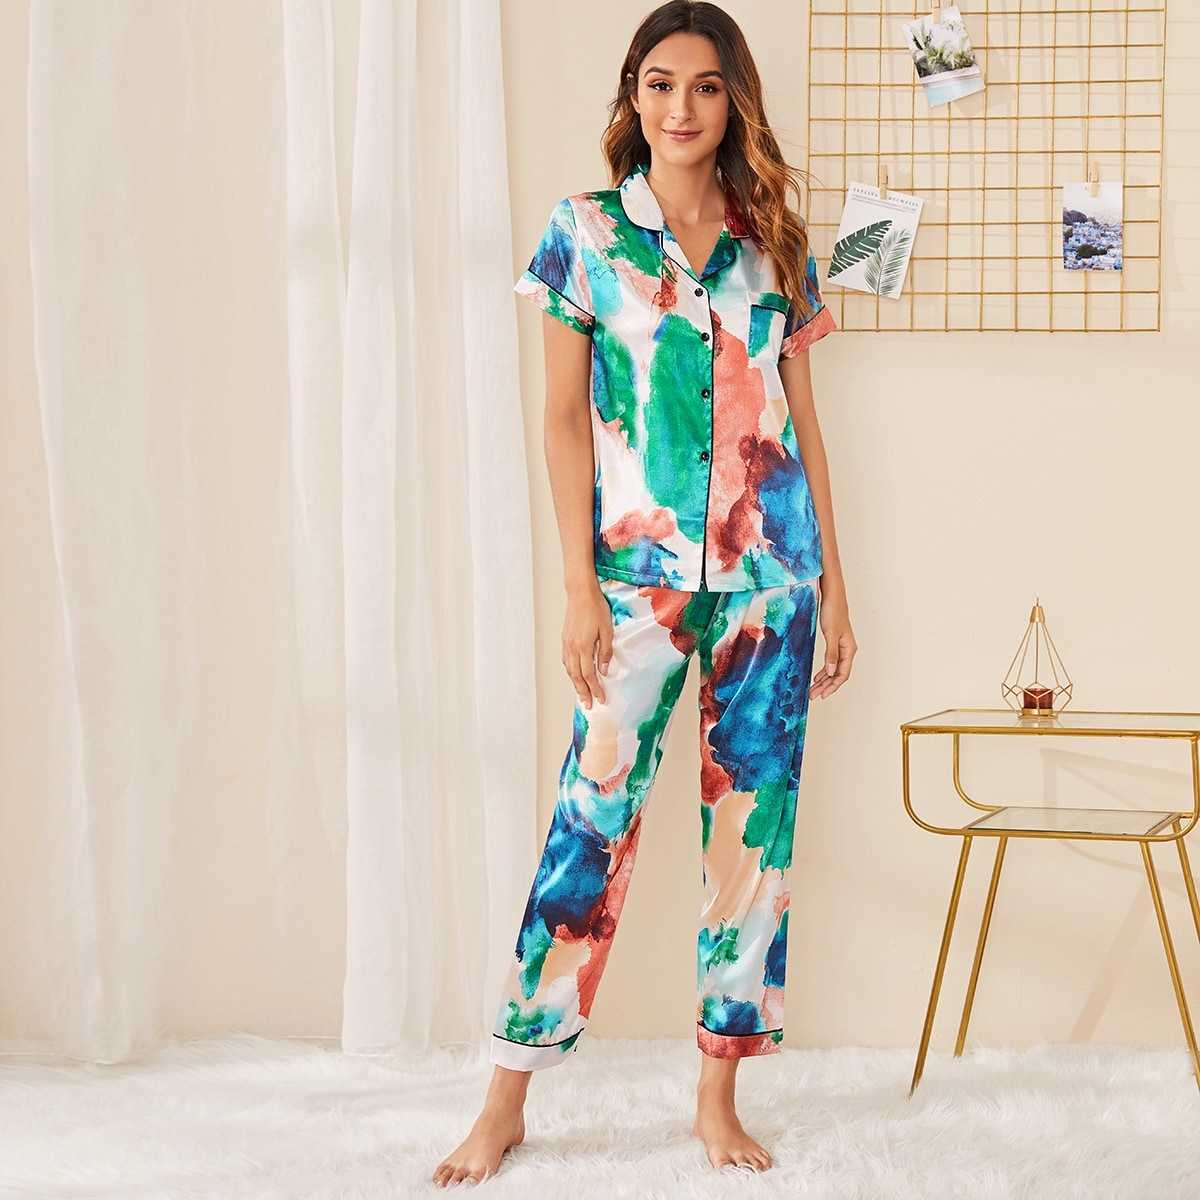 Ink Painting Print Satin Pajama Set in Multicolor by ROMWE on GOOFASH